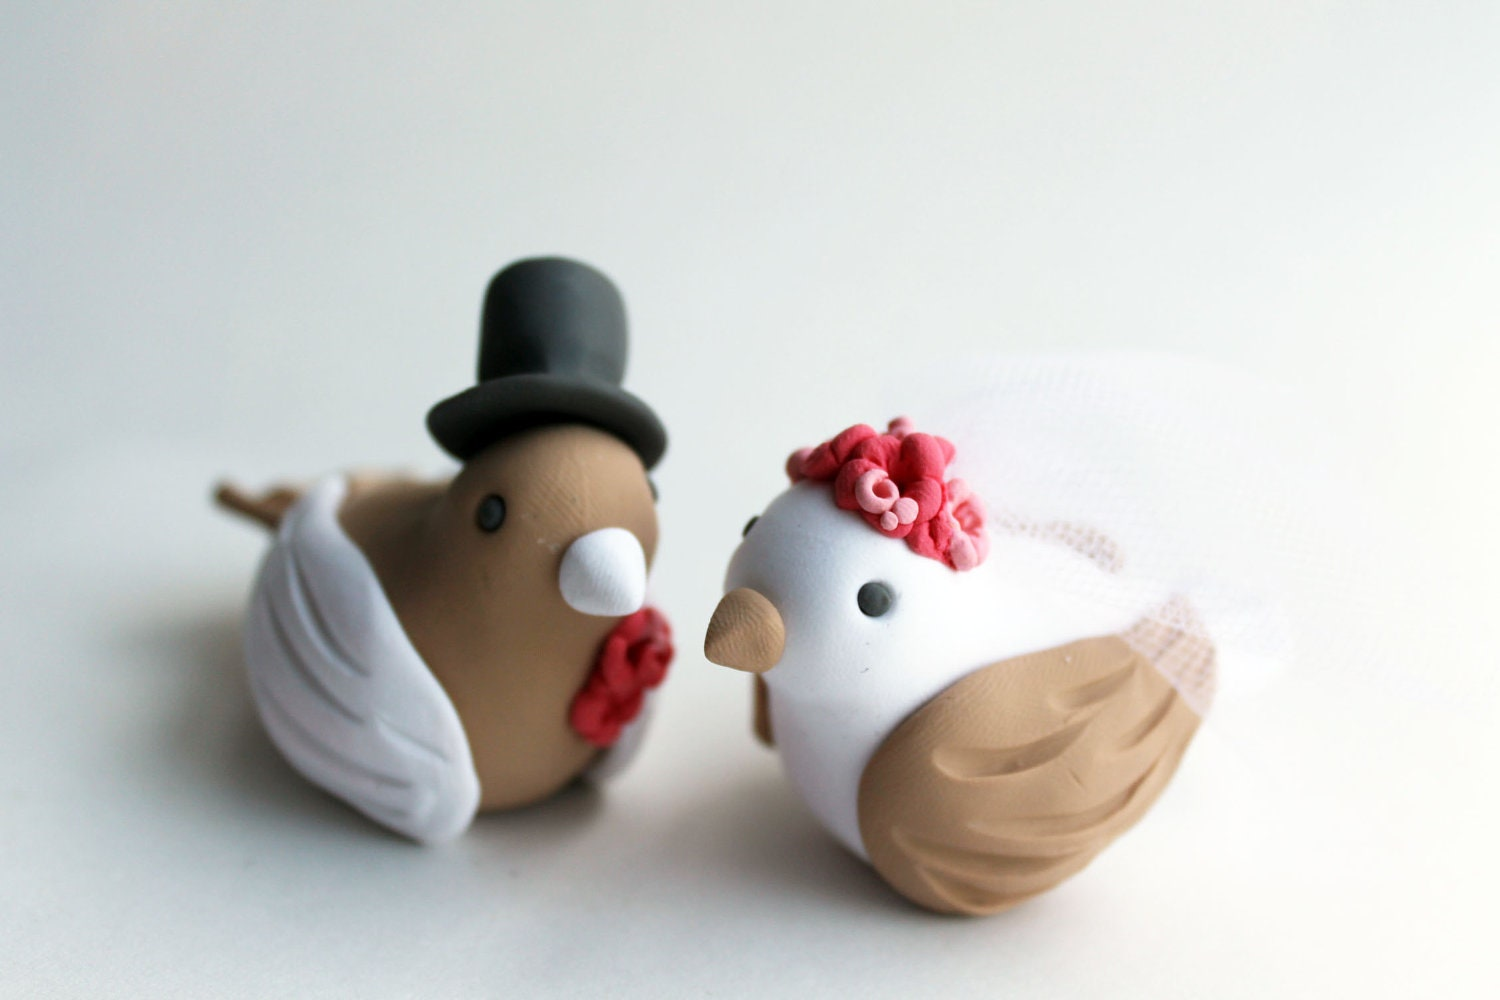 Coral and Tan Love Bird Wedding Cake Topper - With Top Hat and Veil - Custom Colors - CherryRedToppers